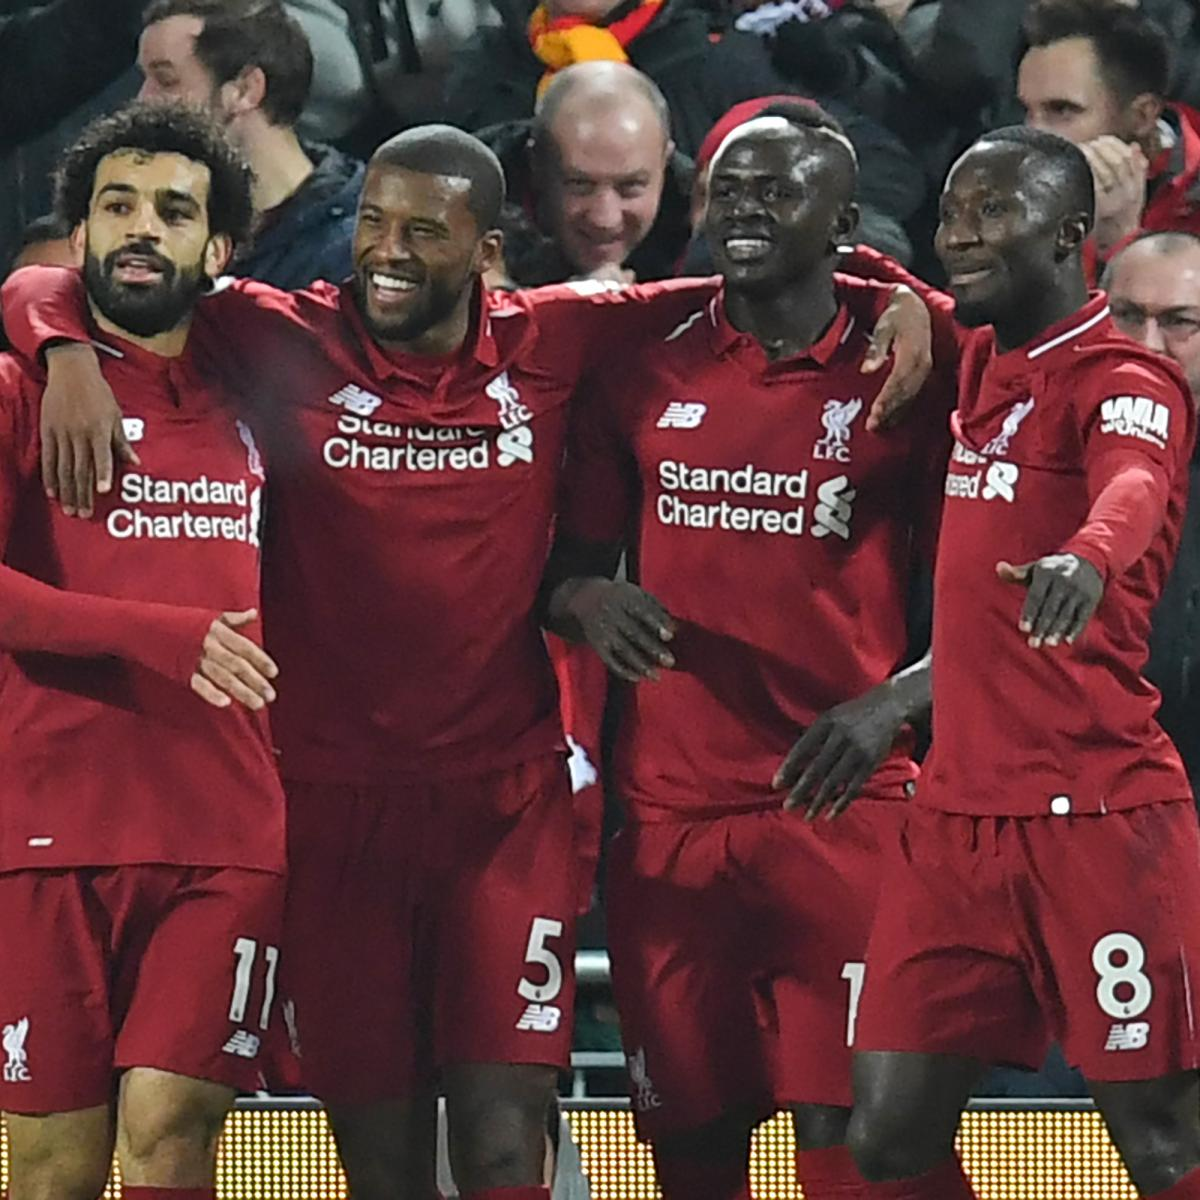 Barcelona Vs Liverpool Odds Live Stream Tv Info For: Wolverhampton Wanderers Vs. Liverpool: Odds, Preview, Live